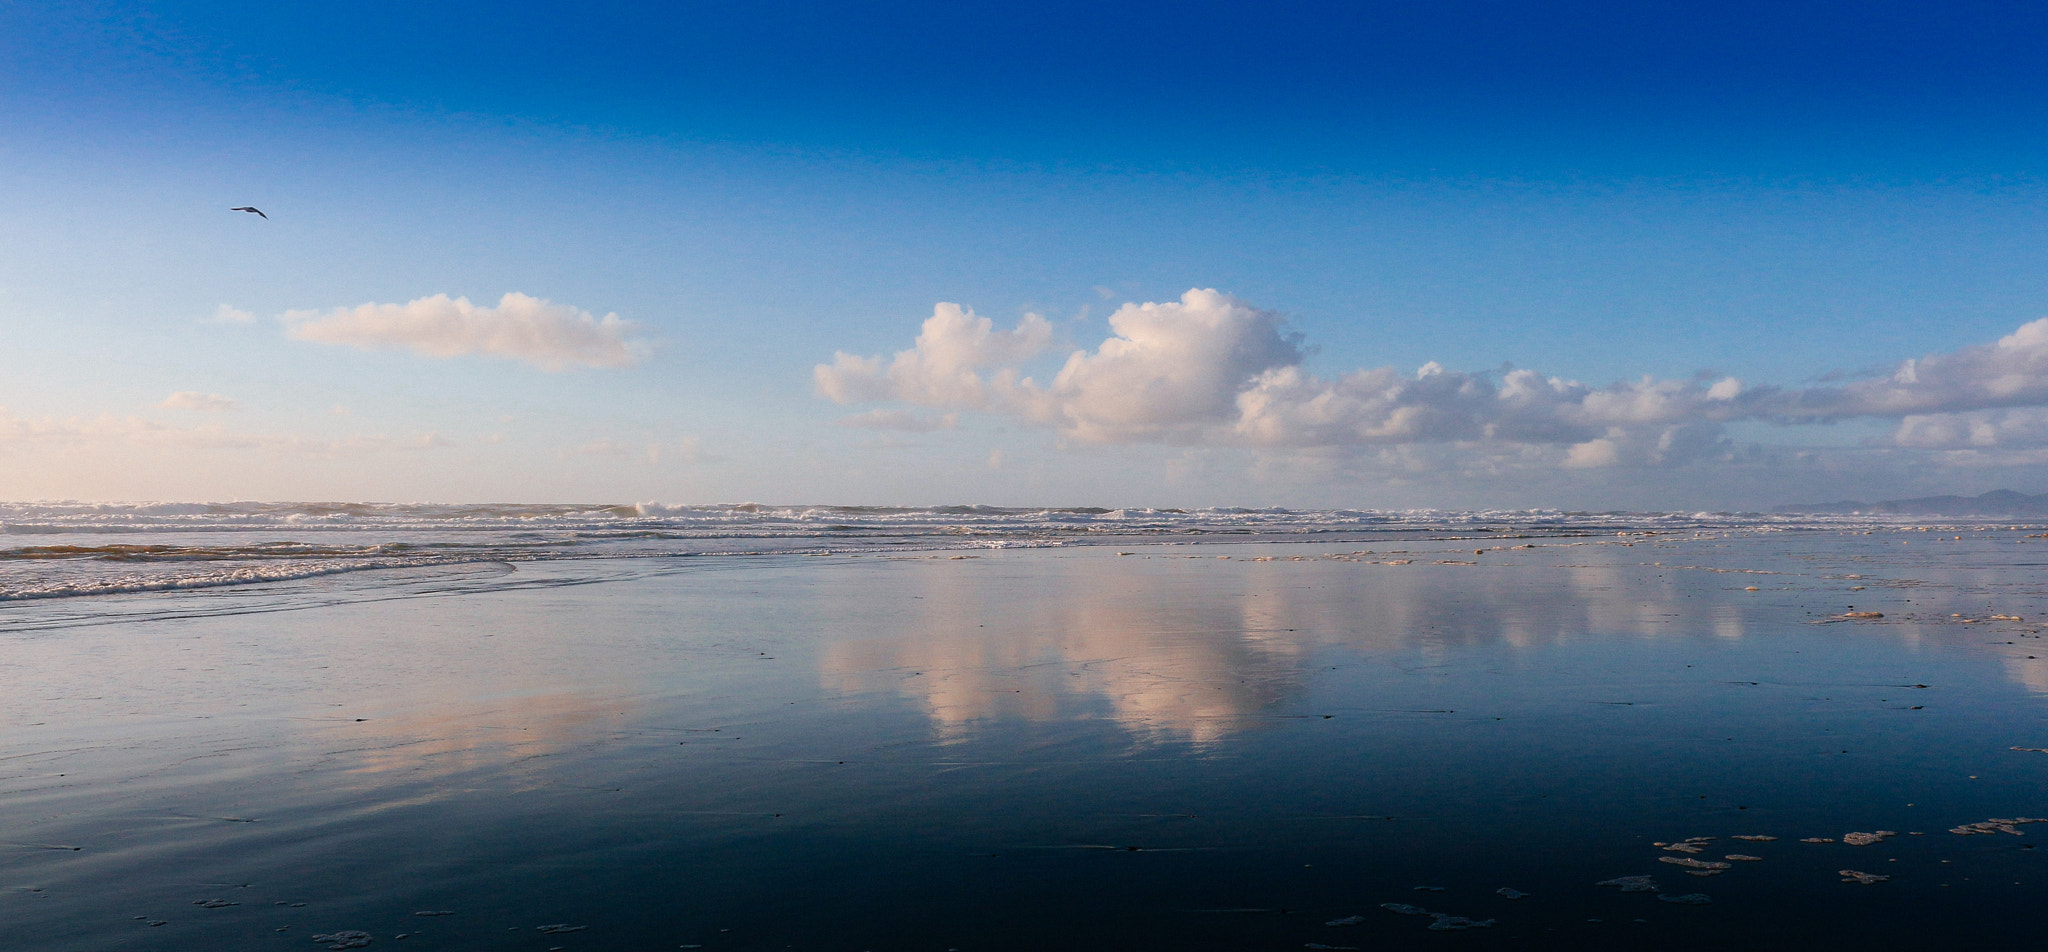 Photograph A study in blue by Mark Prince on 500px